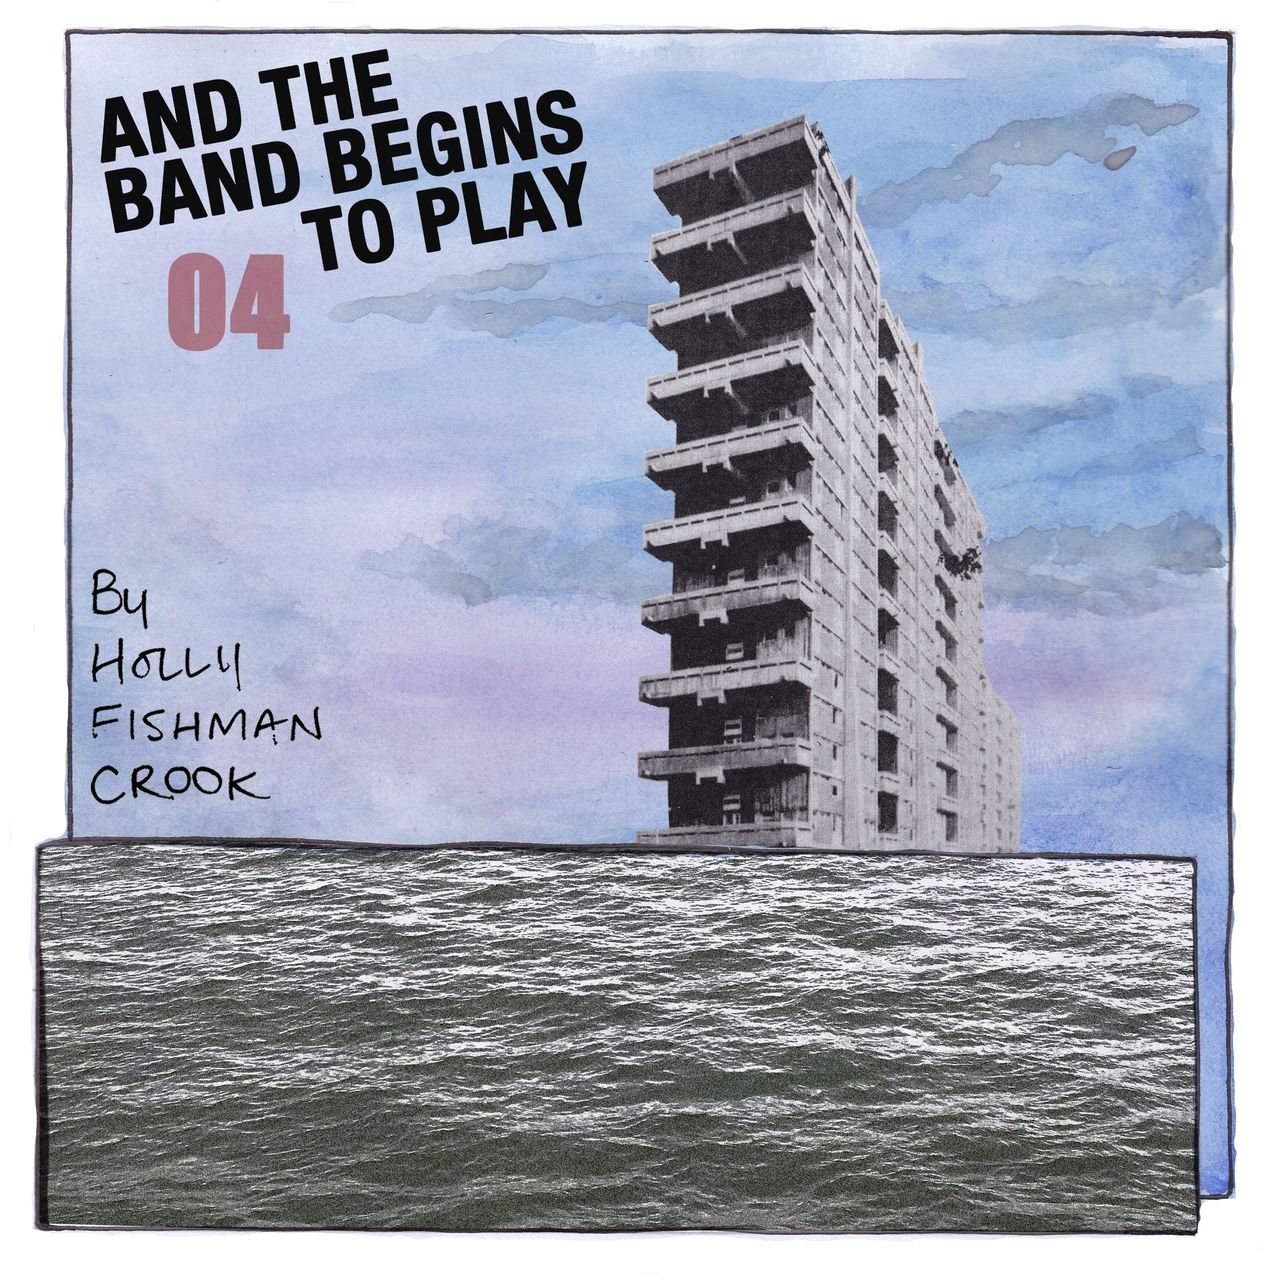 """Webcomic chapter four's front page. Made up of a collage of high rise towers. The words """"And the band begins to play part 4"""" is superimposed over the top."""